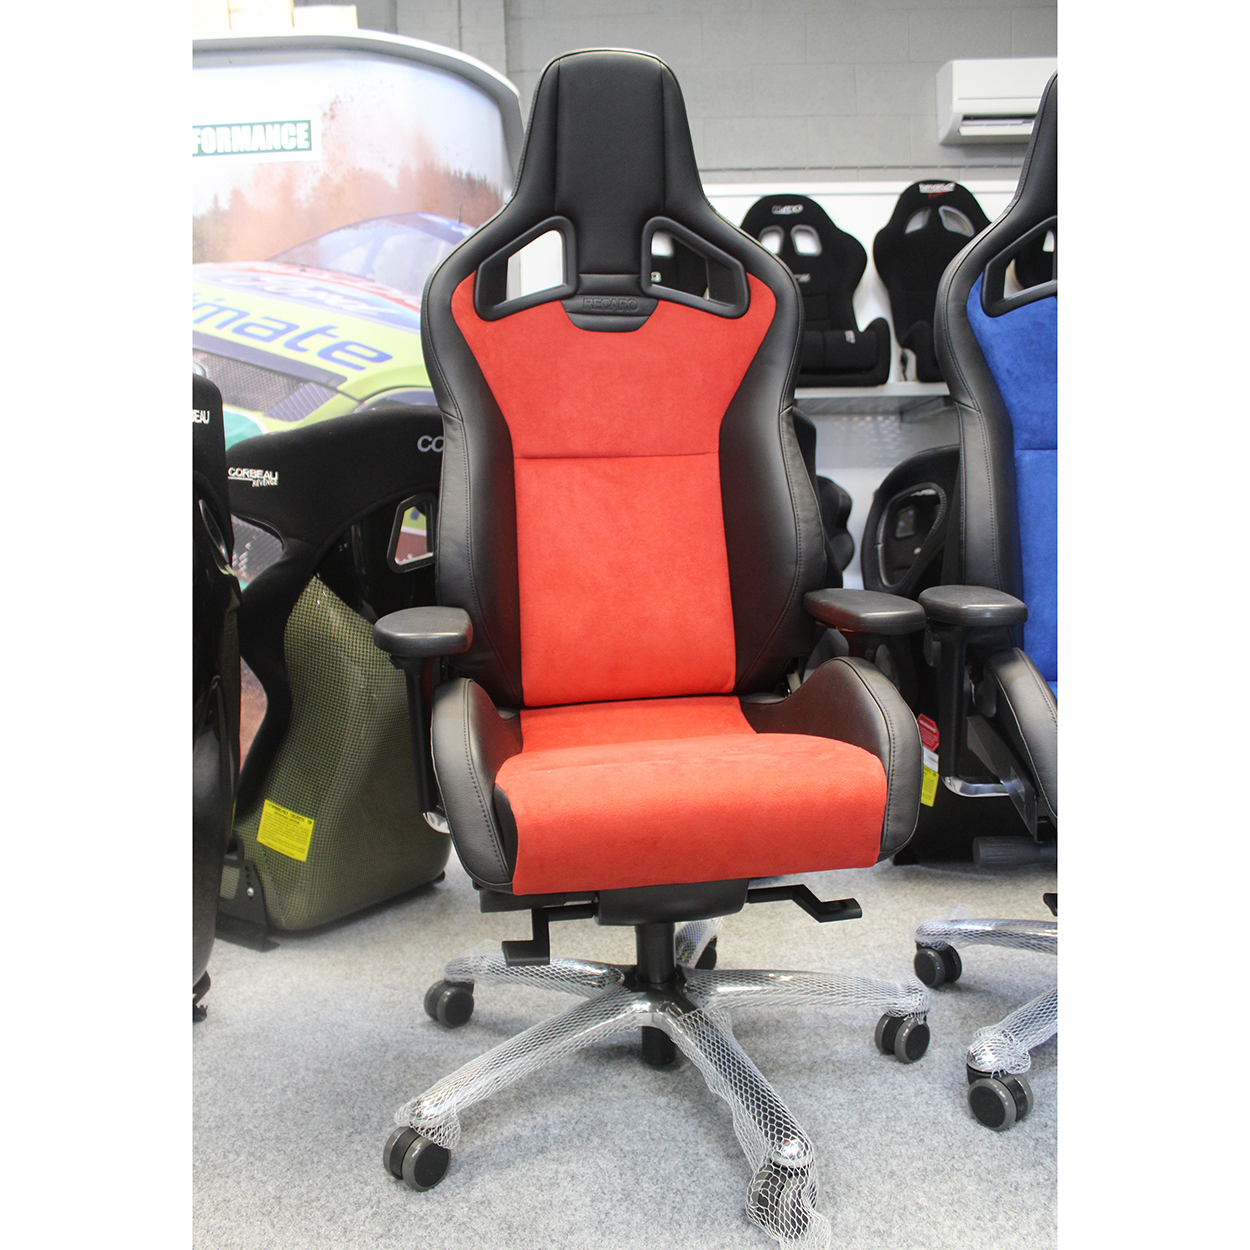 Car Seats As Office Chair